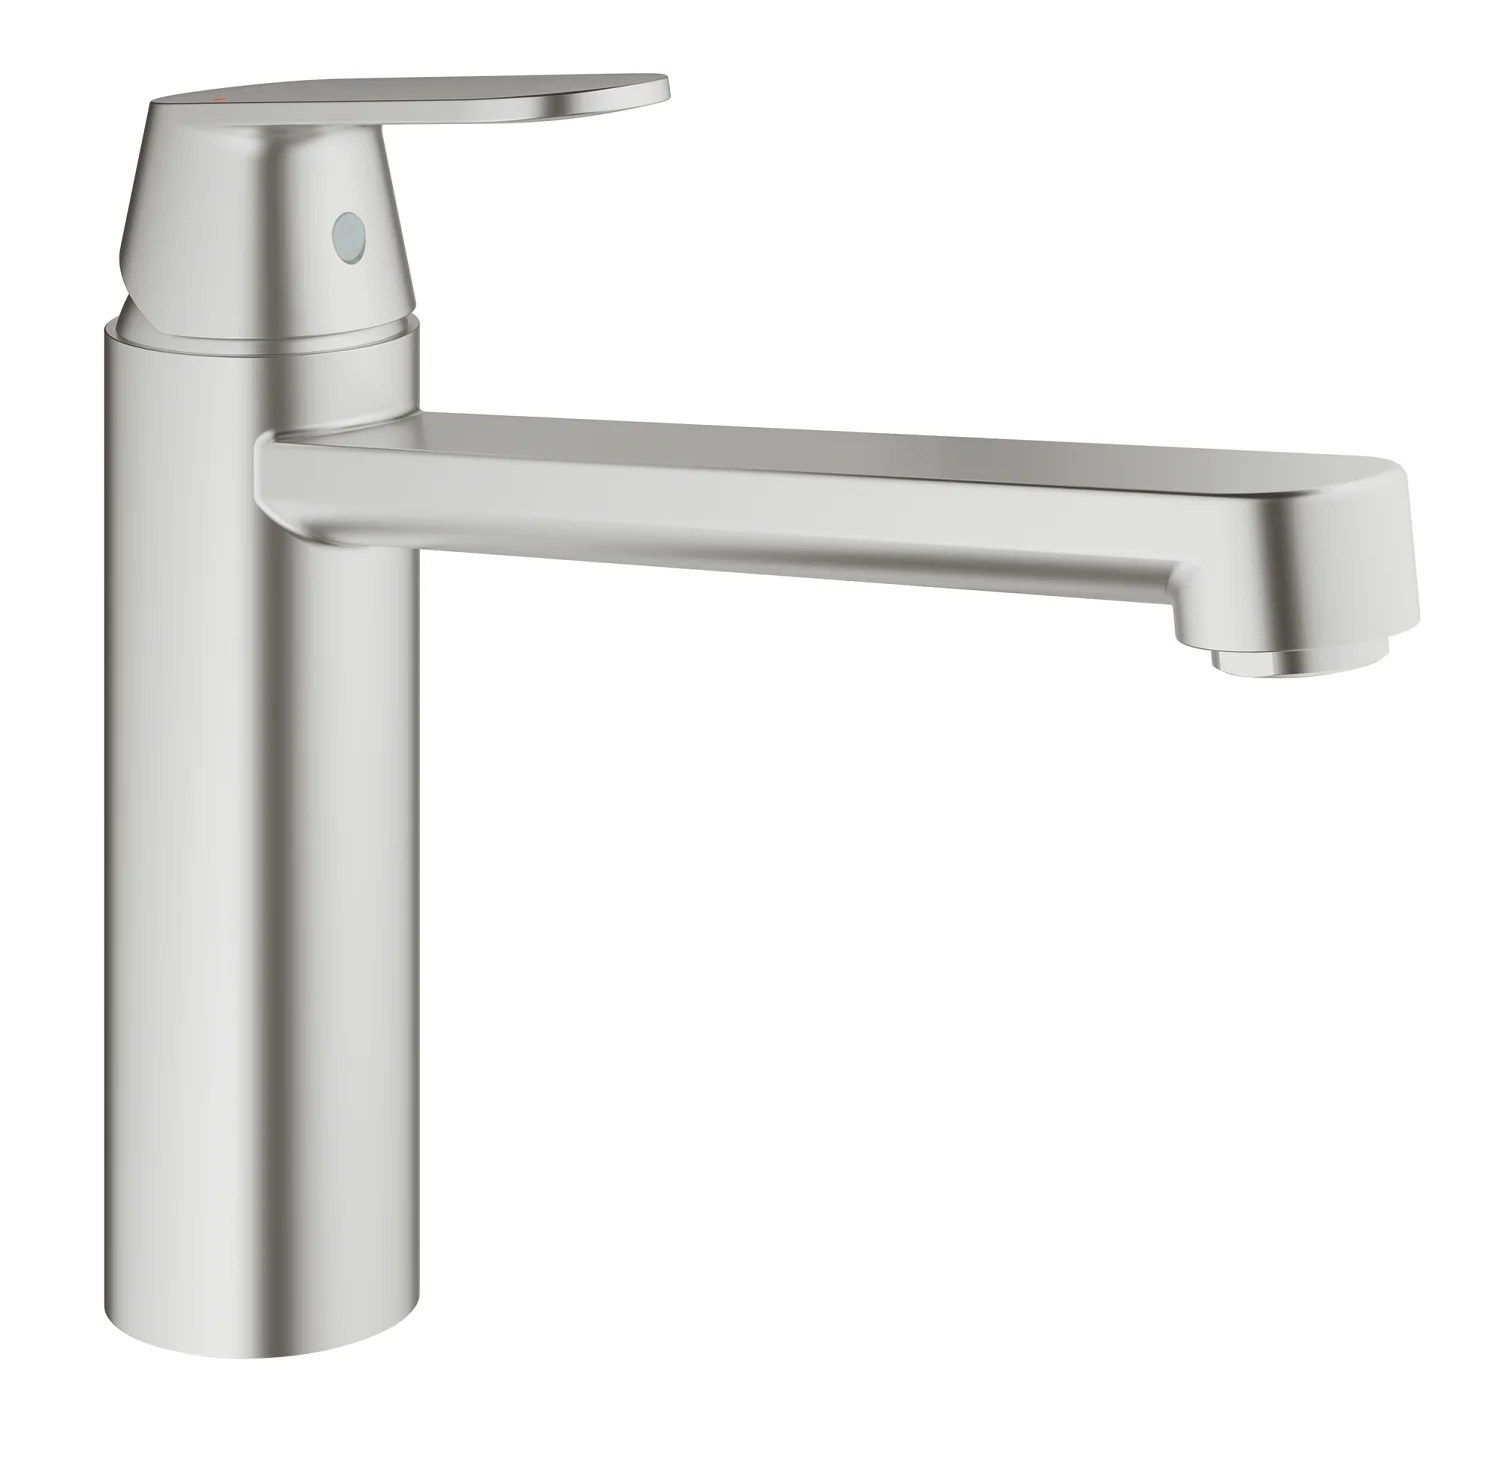 mitigeur grohe evier leroy merlin